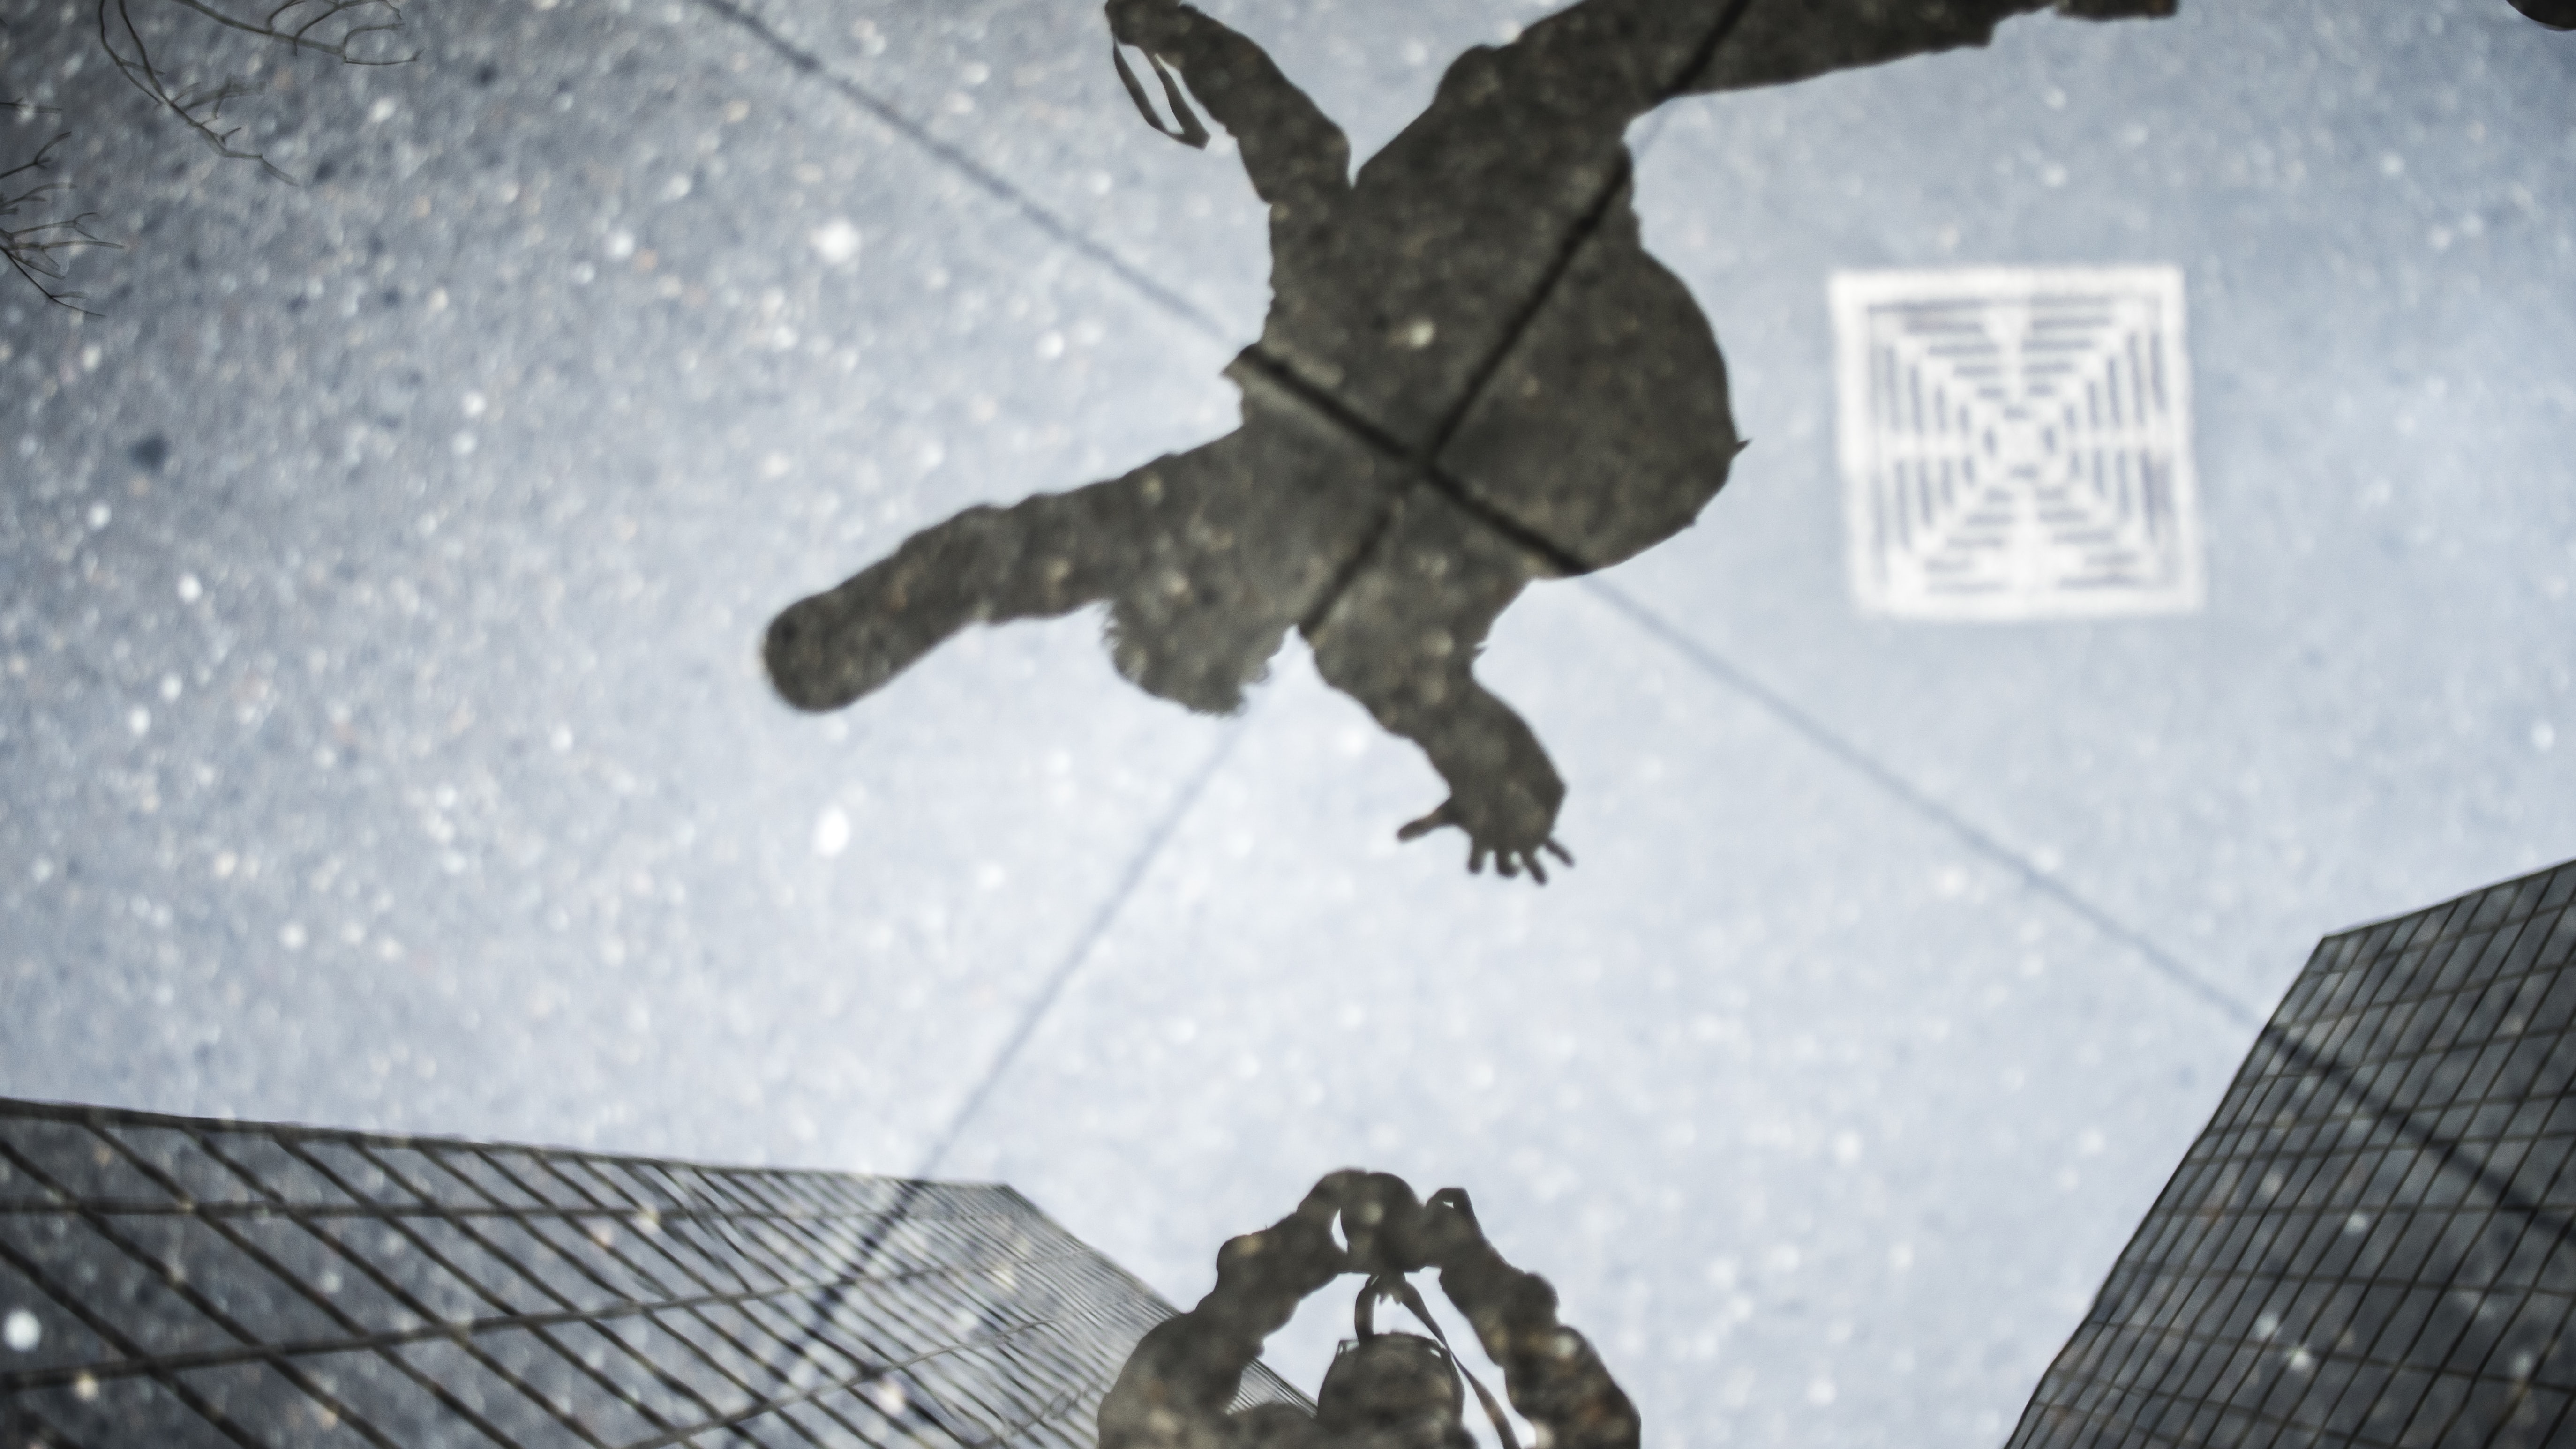 Puddle reflections of a photographer and person jumping